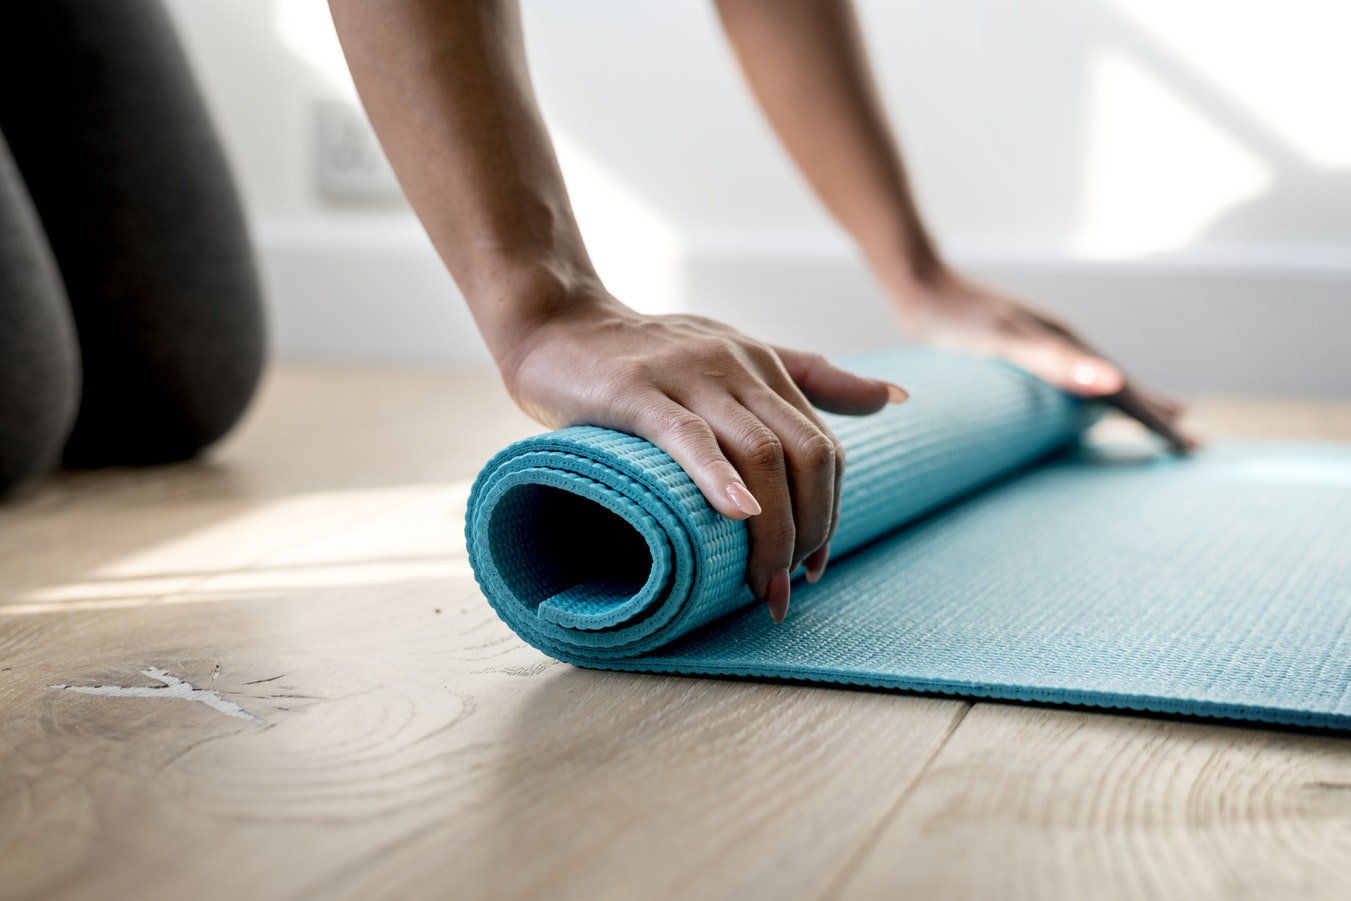 A woman rolling up a yoga mat used for exercise and maintaining cognitive health.